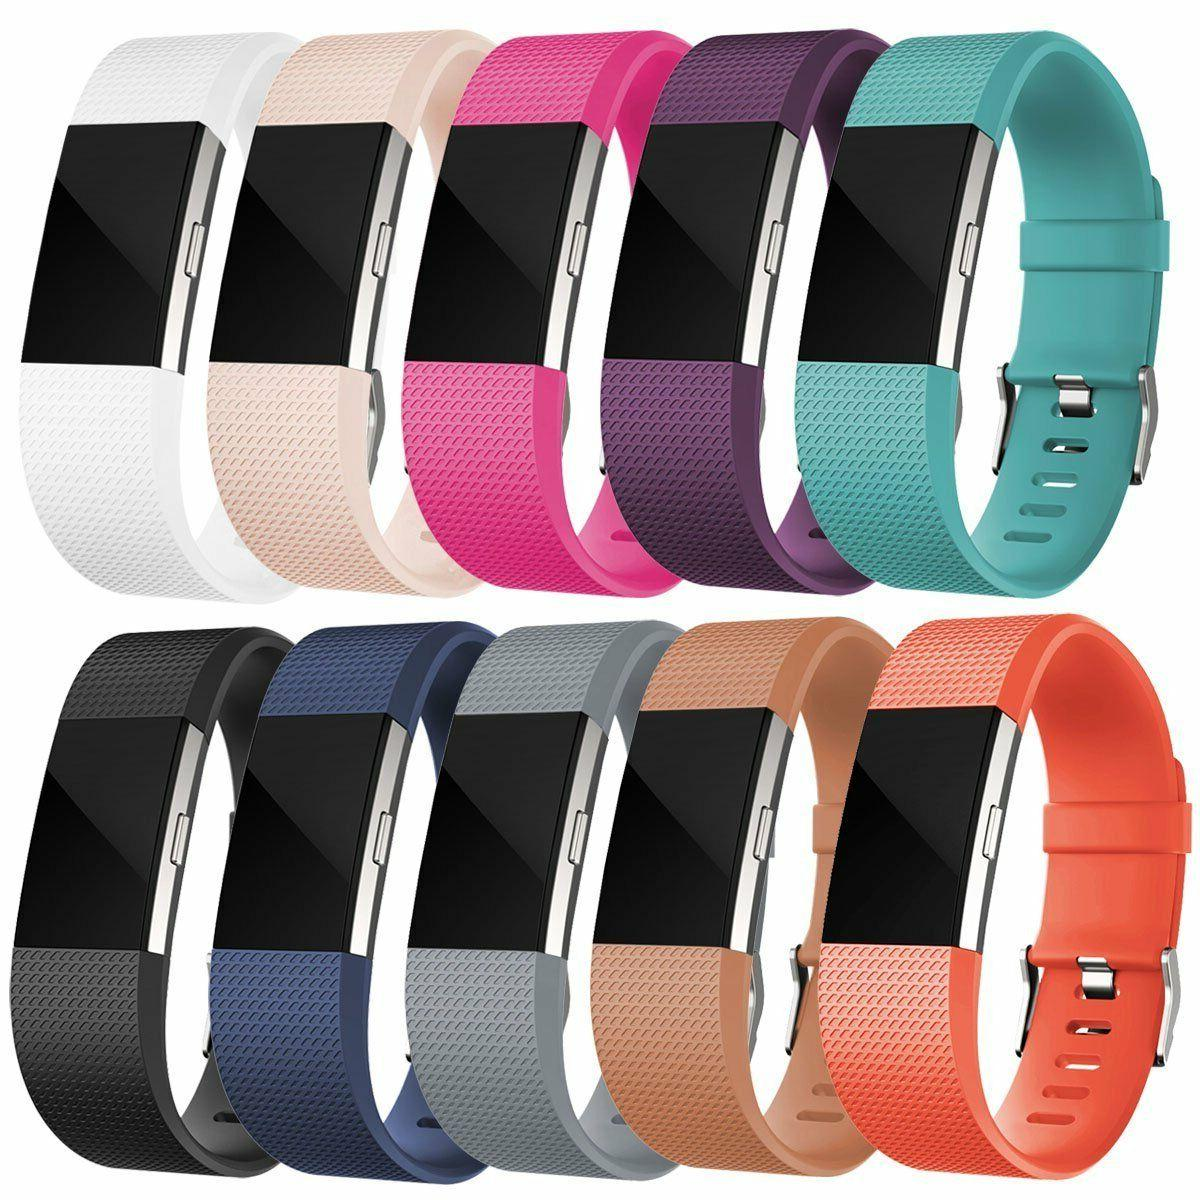 Replacement Silicone Band Rubber Strap Wristband Bracelet Fo